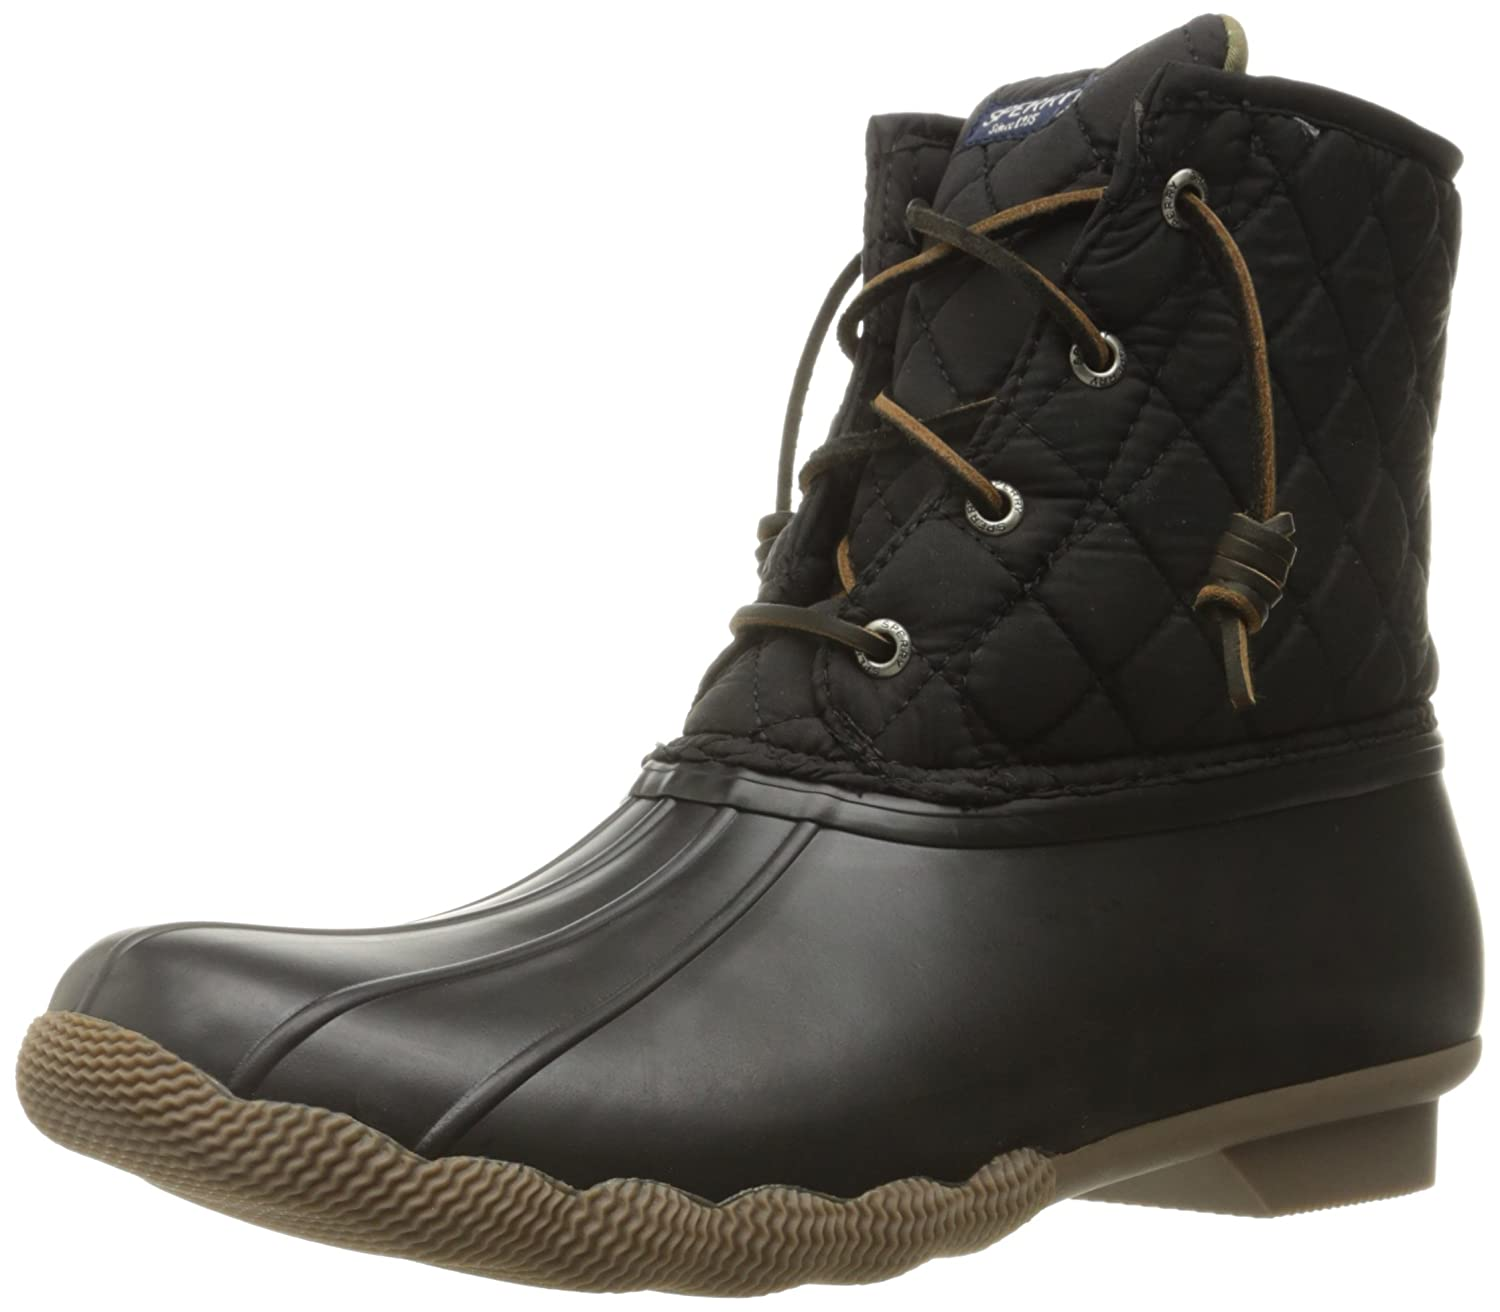 Sperry Women's Saltwater Boot B00QW4FFC6 5 B(M) US|Black Quilted